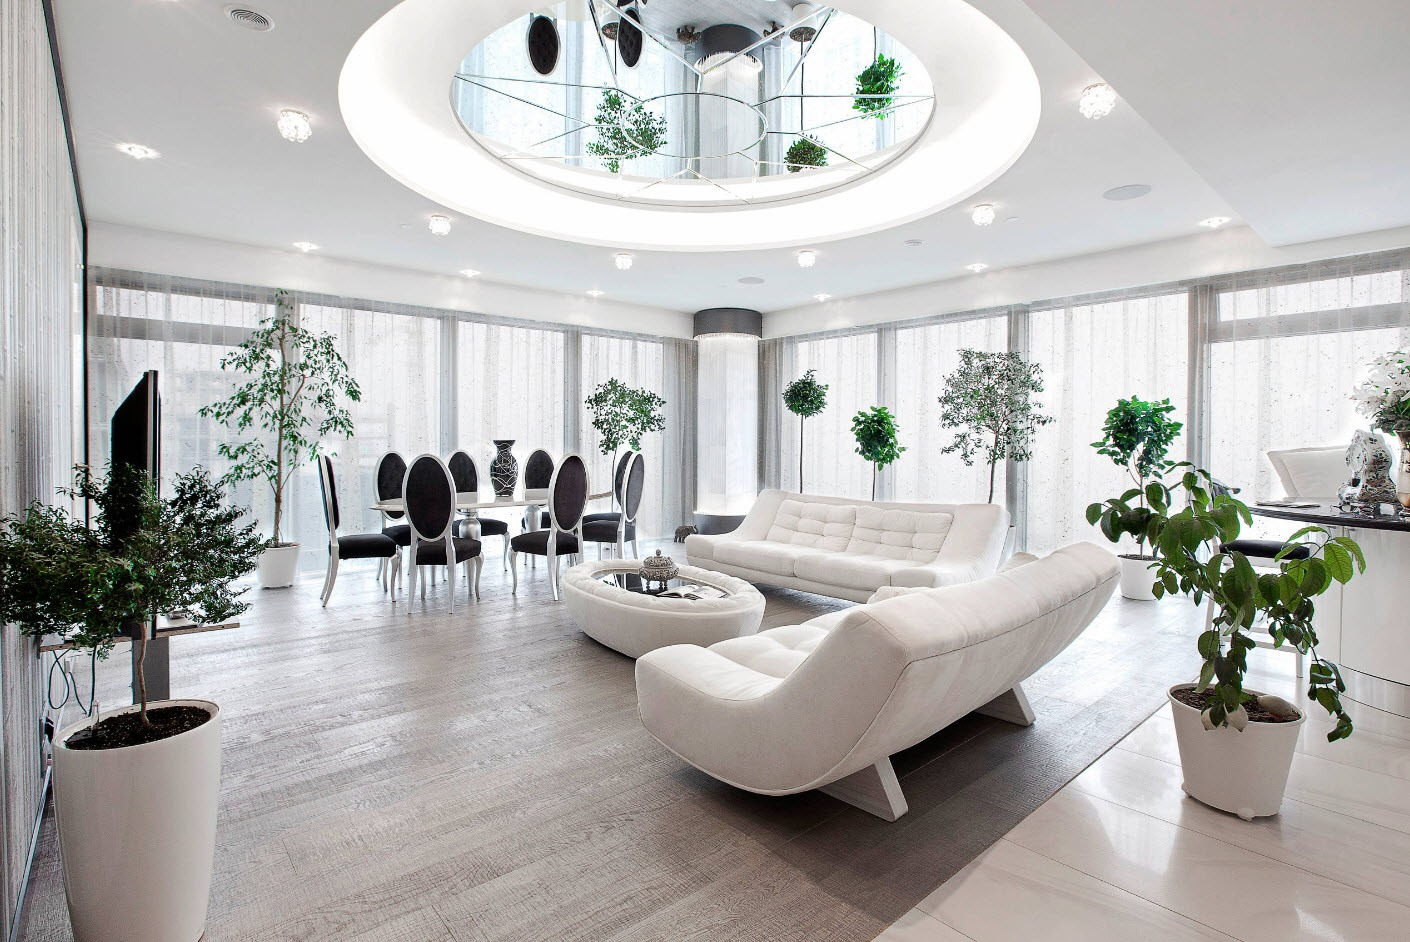 Ultramodern rich living room with smooth lines of the sofas and round installation with lighting at the ceiling